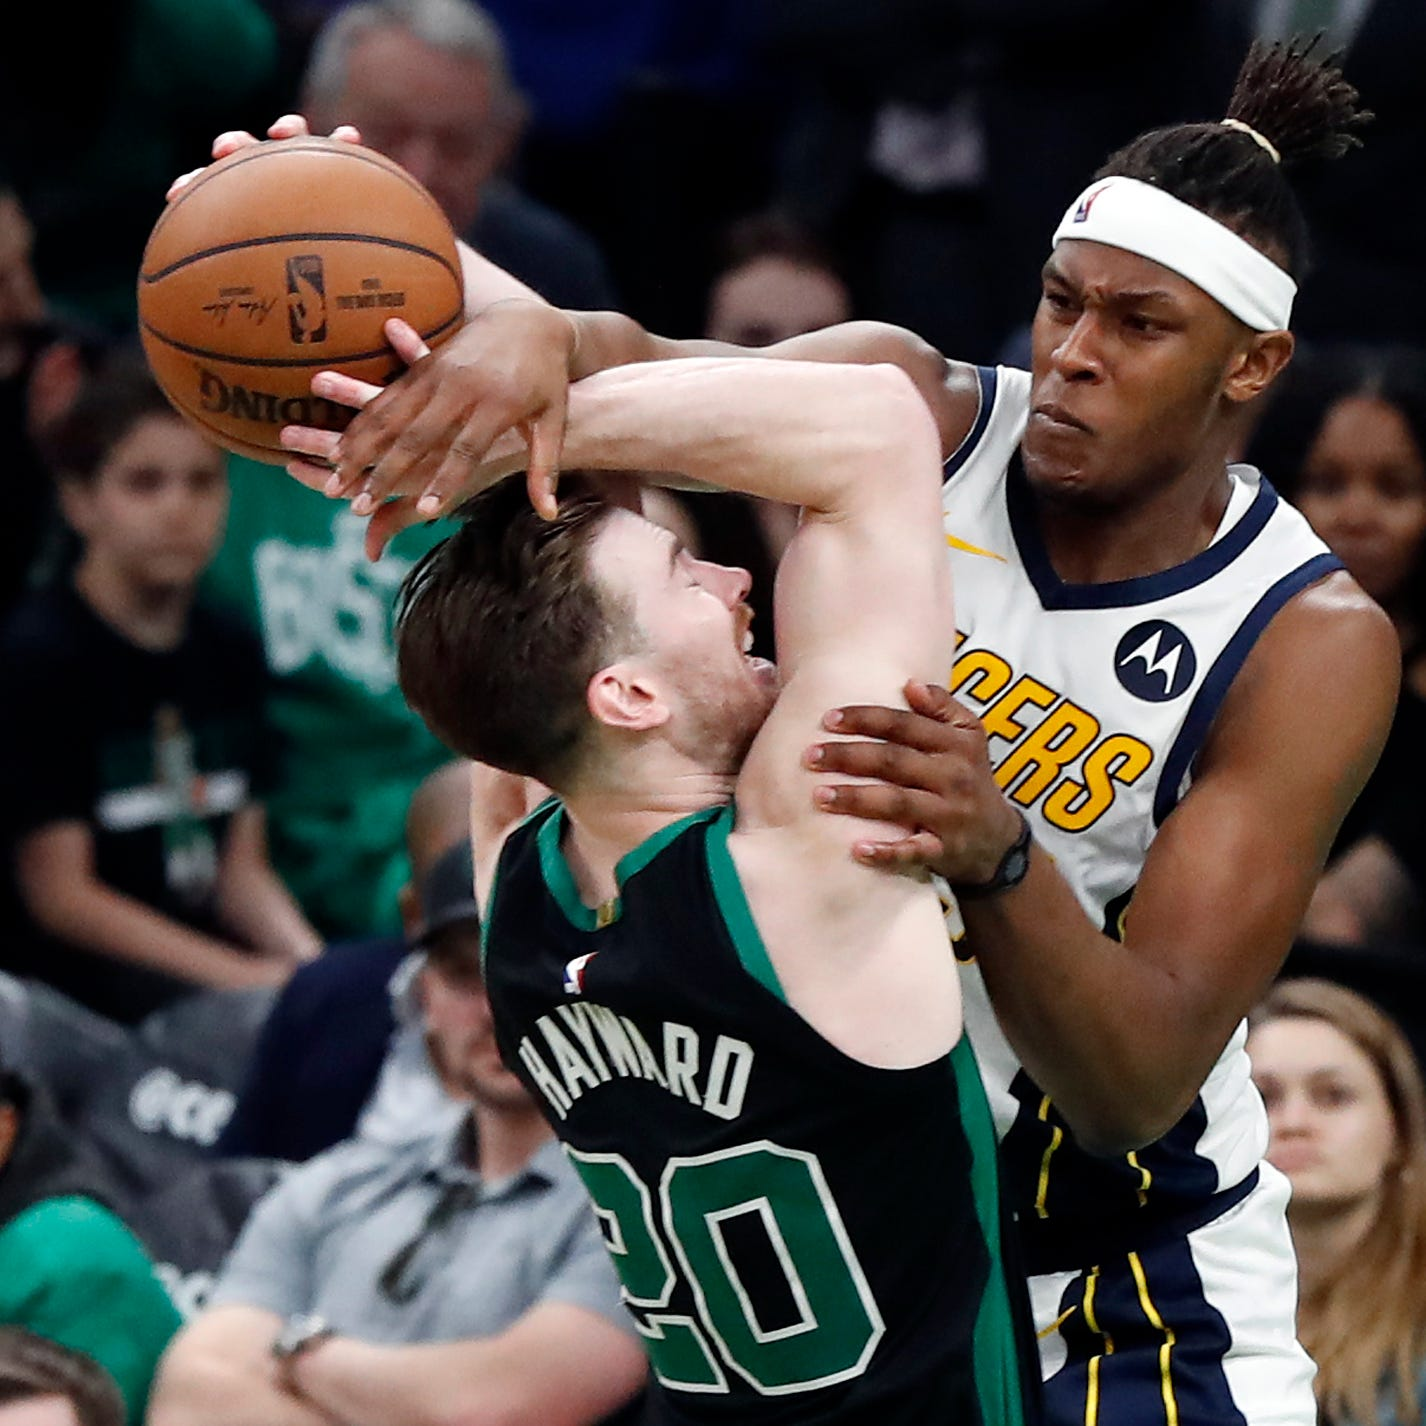 Insider: Why the Pacers Myles Turner (and Thad Young) got snubbed for All-Defense team